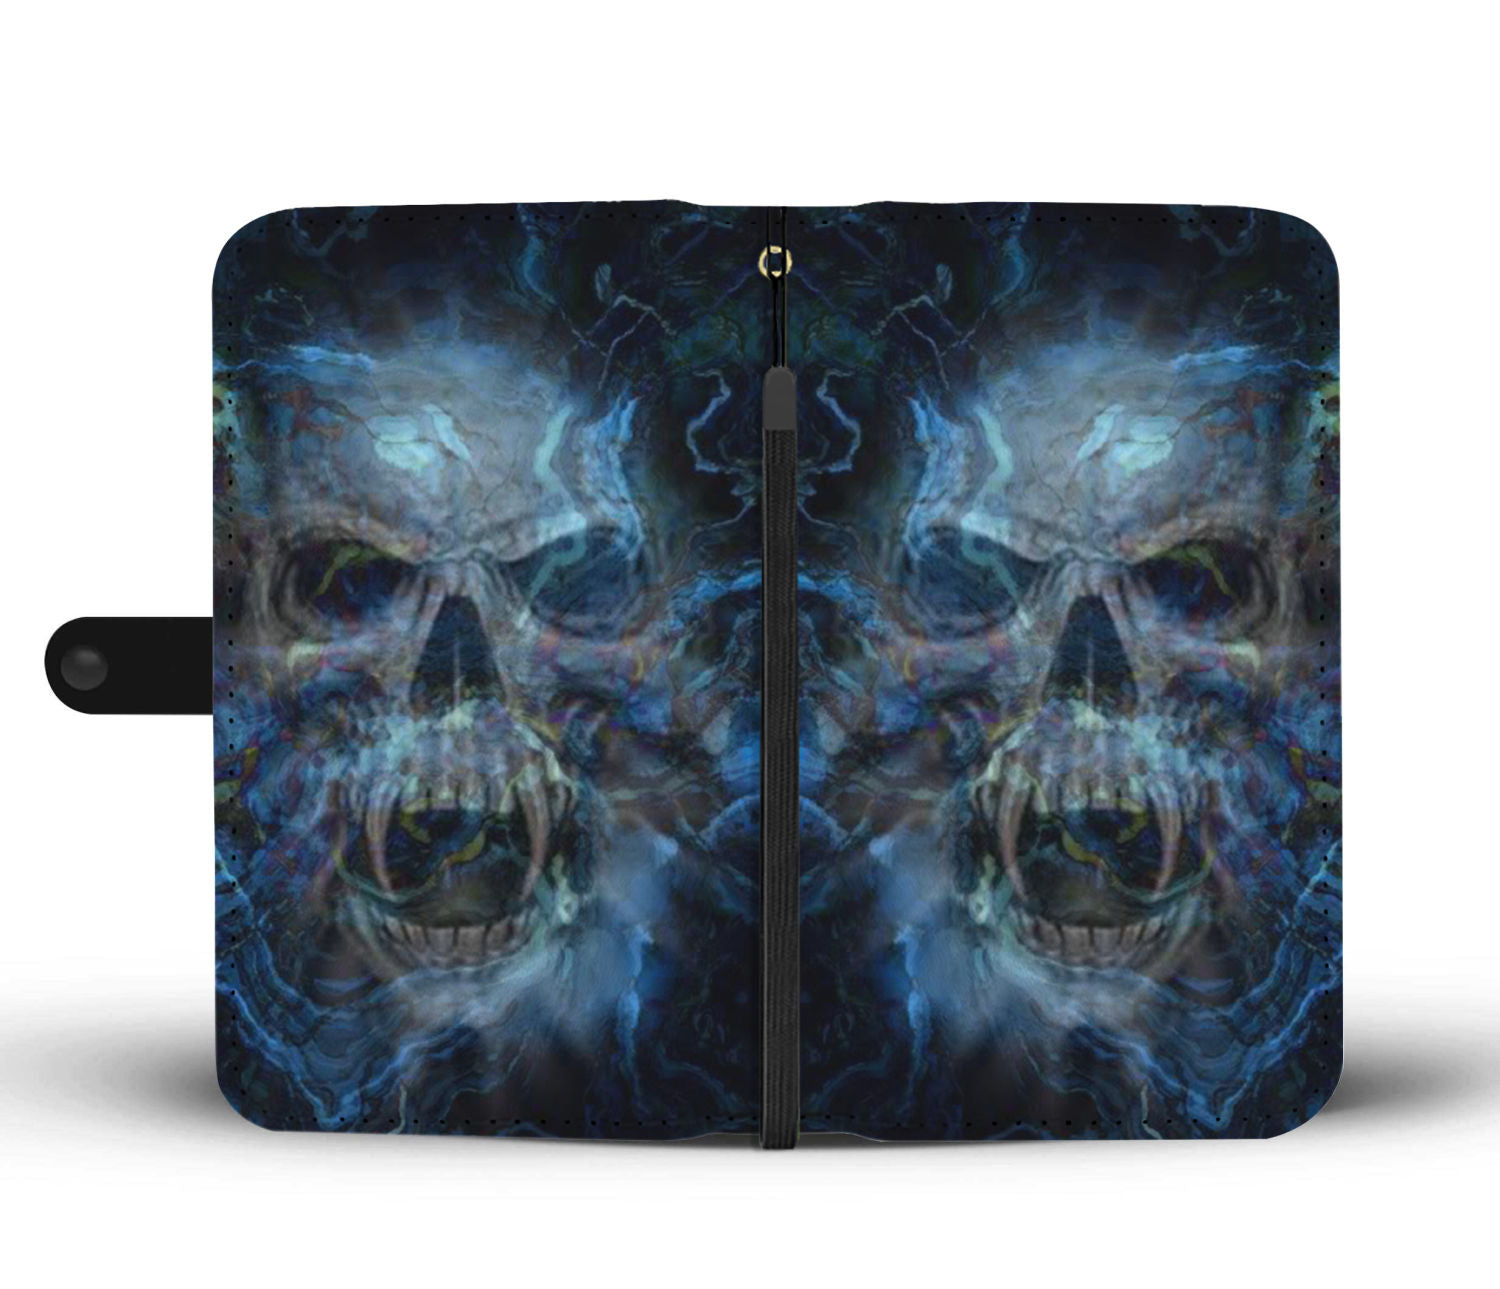 Skull Art Phone Wallet Case 006 - designfullprint